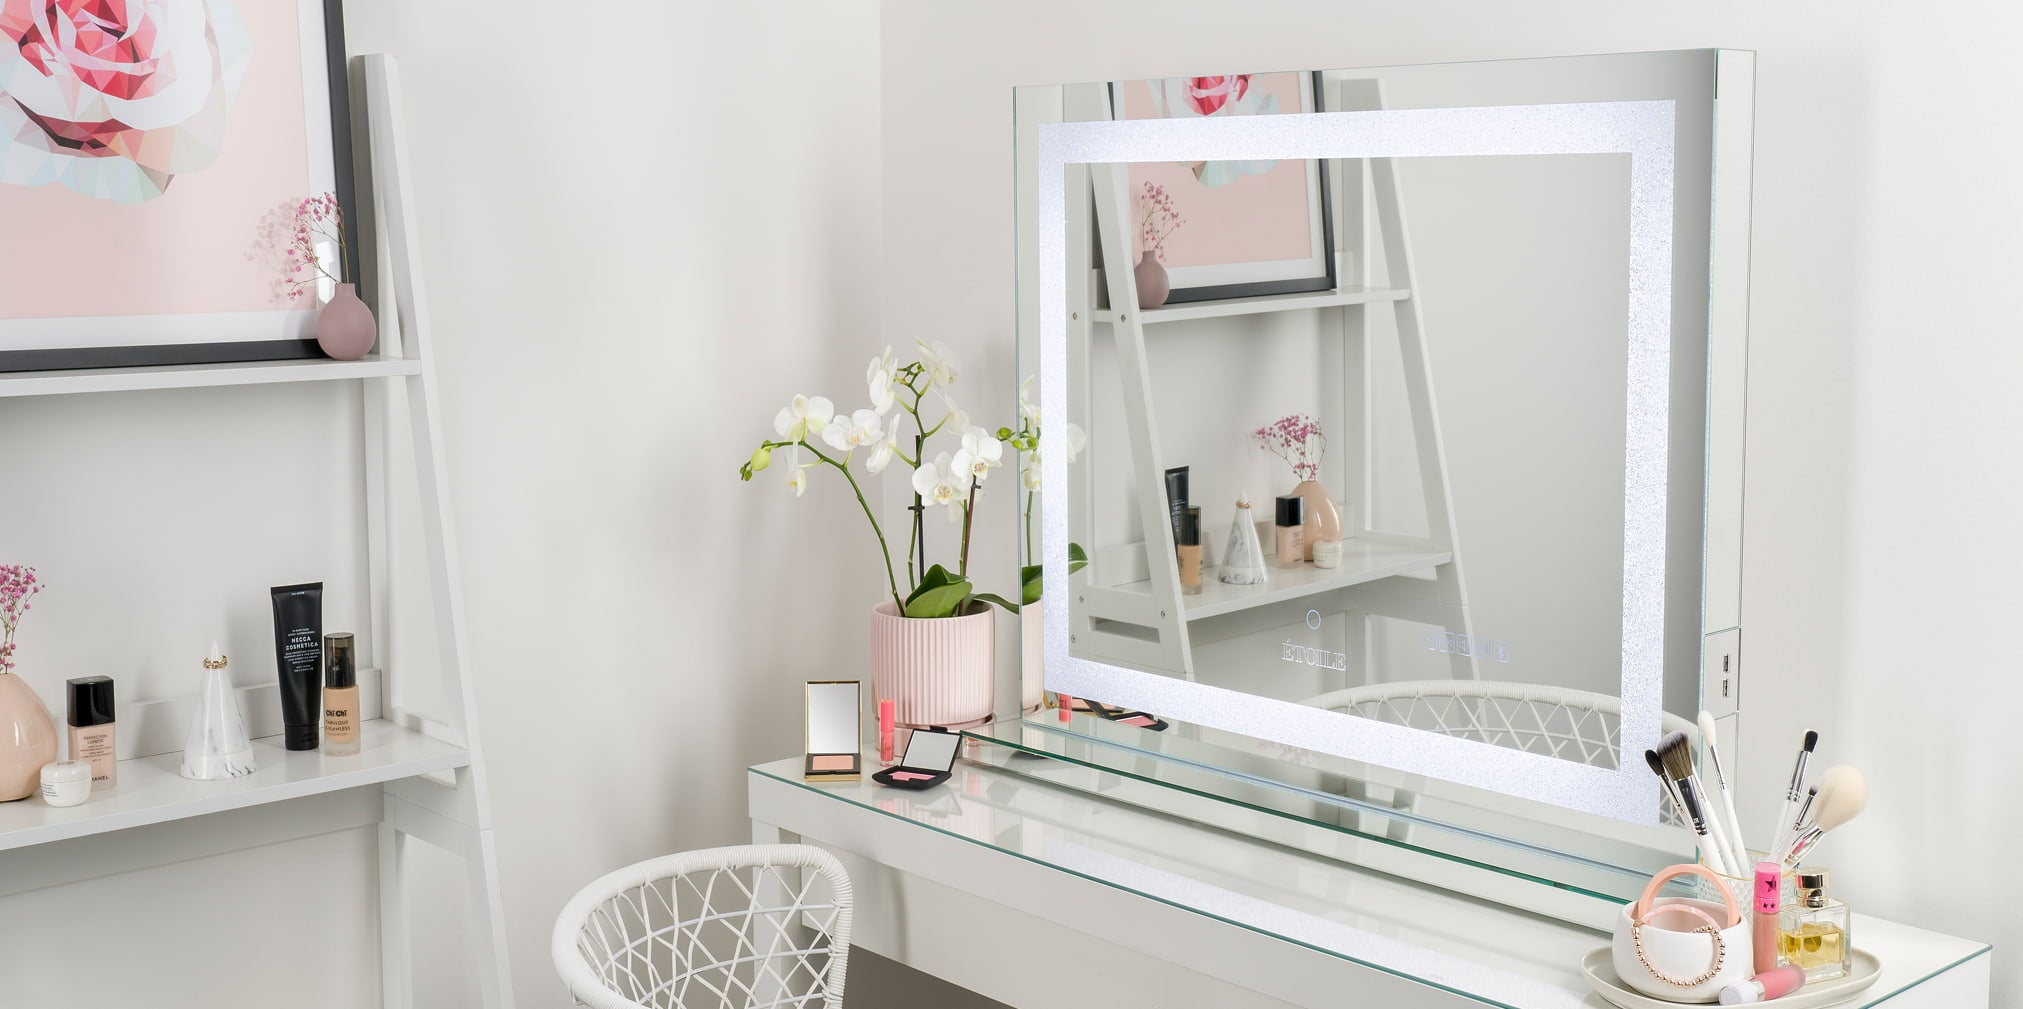 Crystal PRO Vanity Mirror by Etoile Collective with LED frame